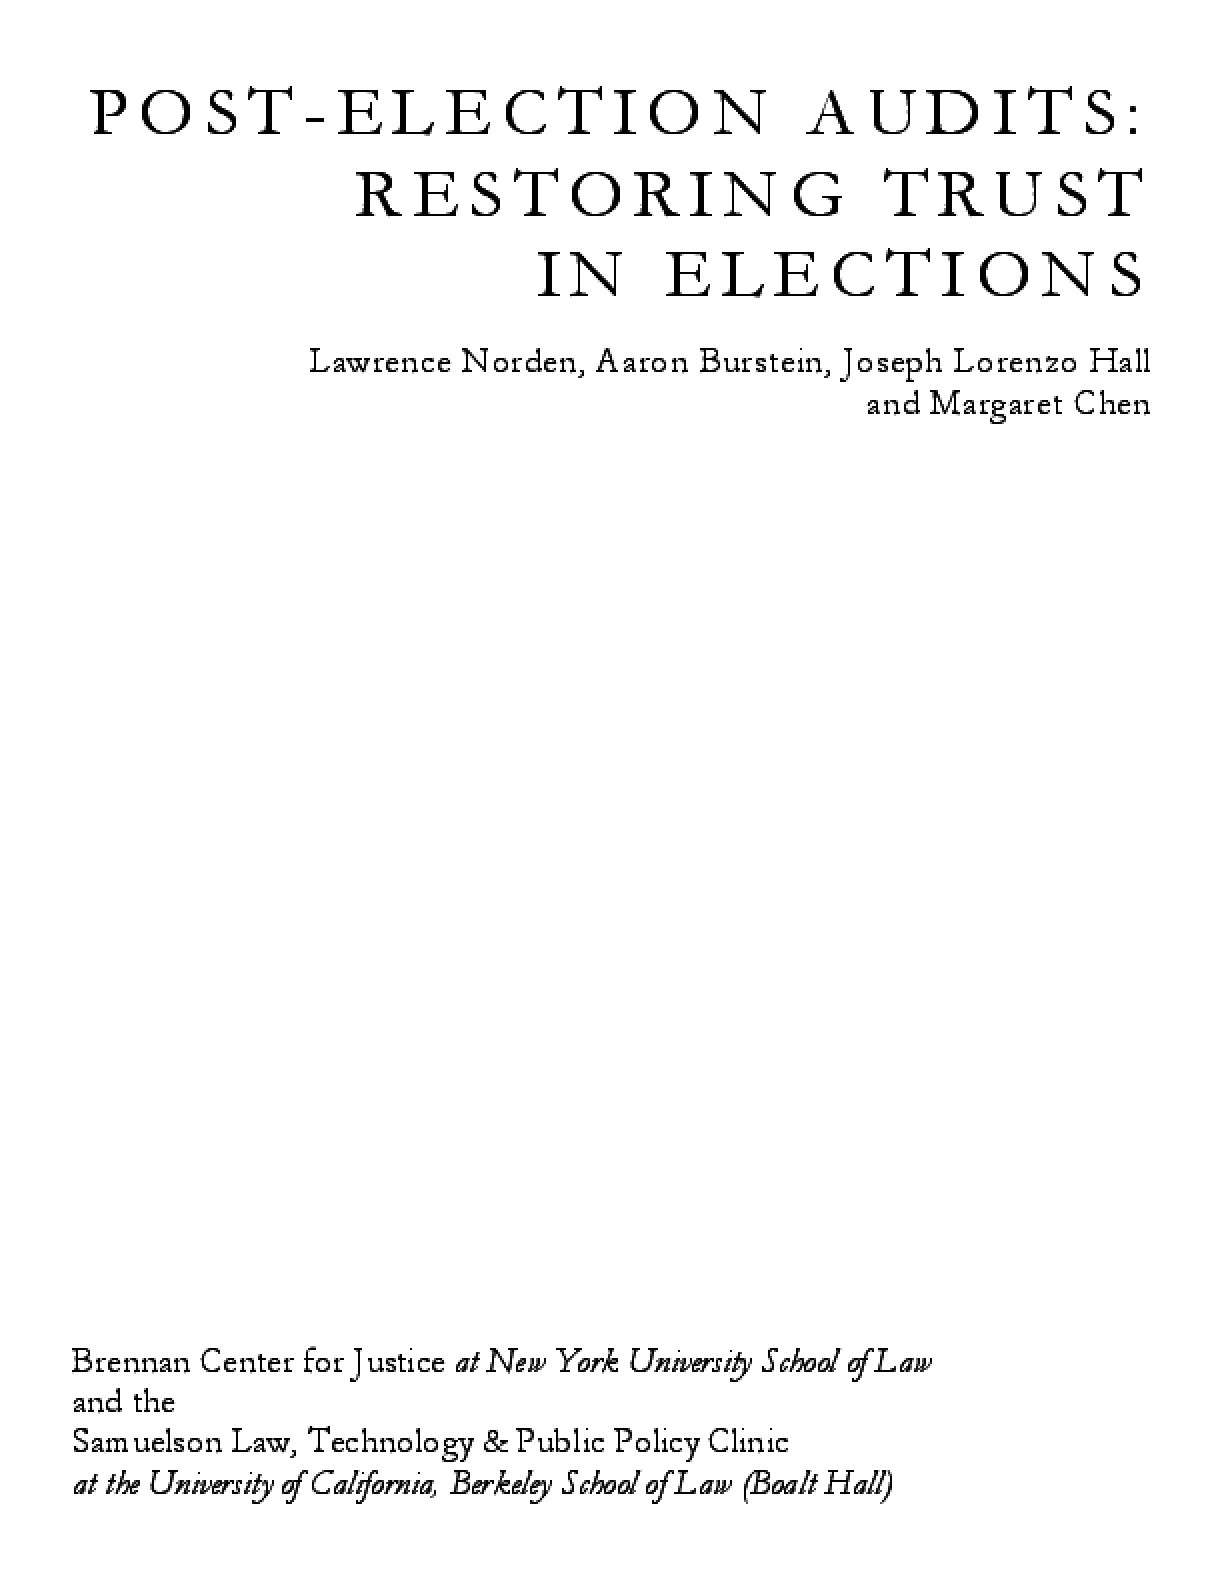 Post-Election Audits: Restoring Trust in Elections